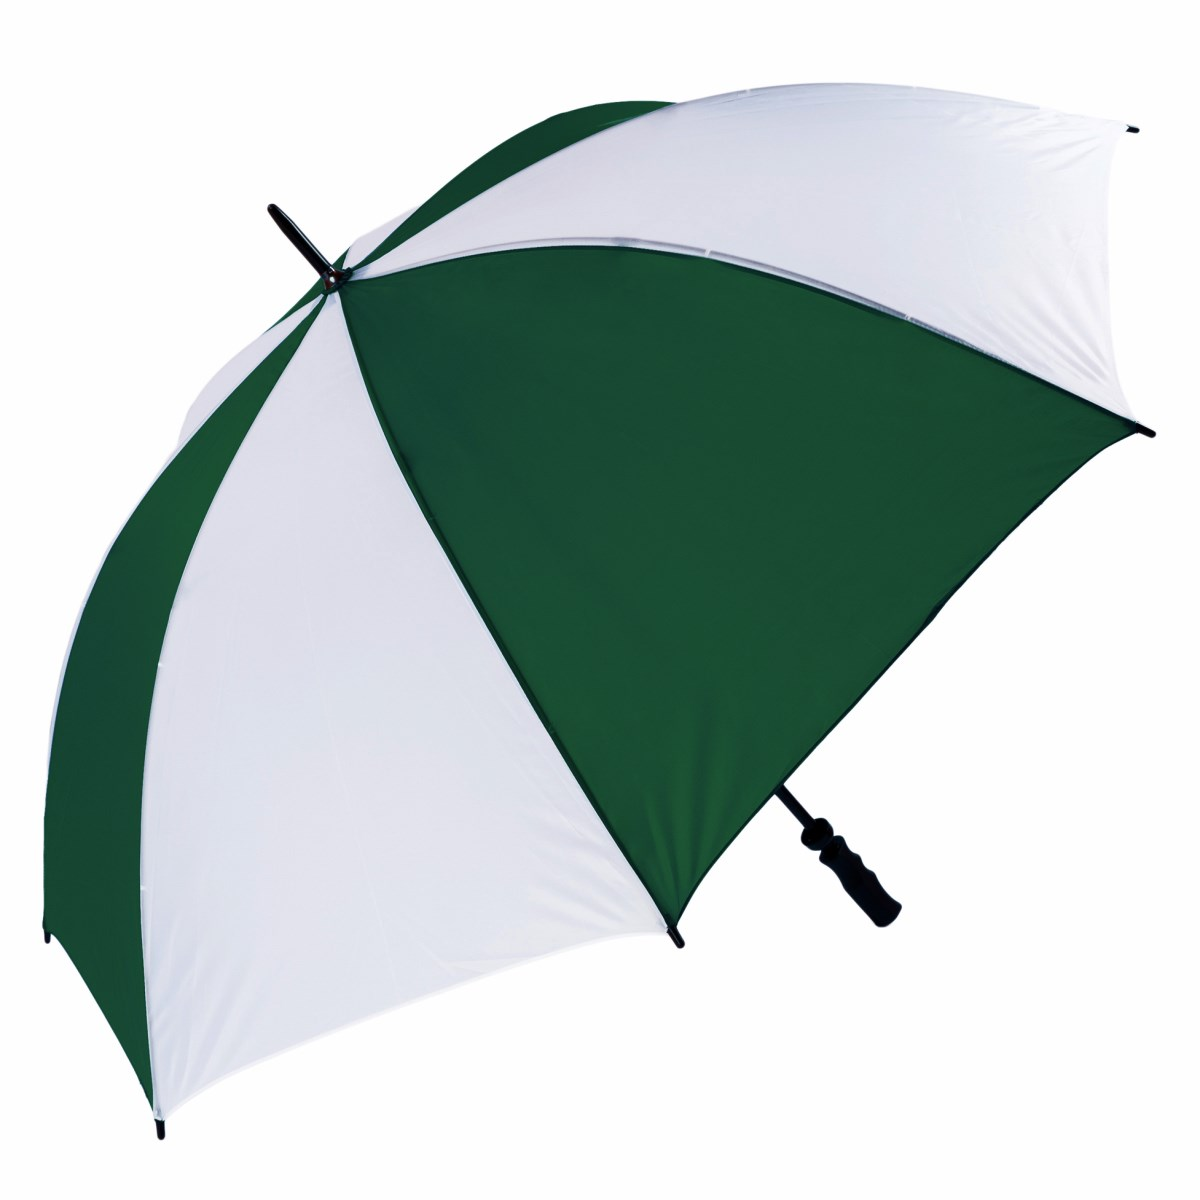 Wind Resistant Fibrelight Large Green & White Golf Umbrella (3473)